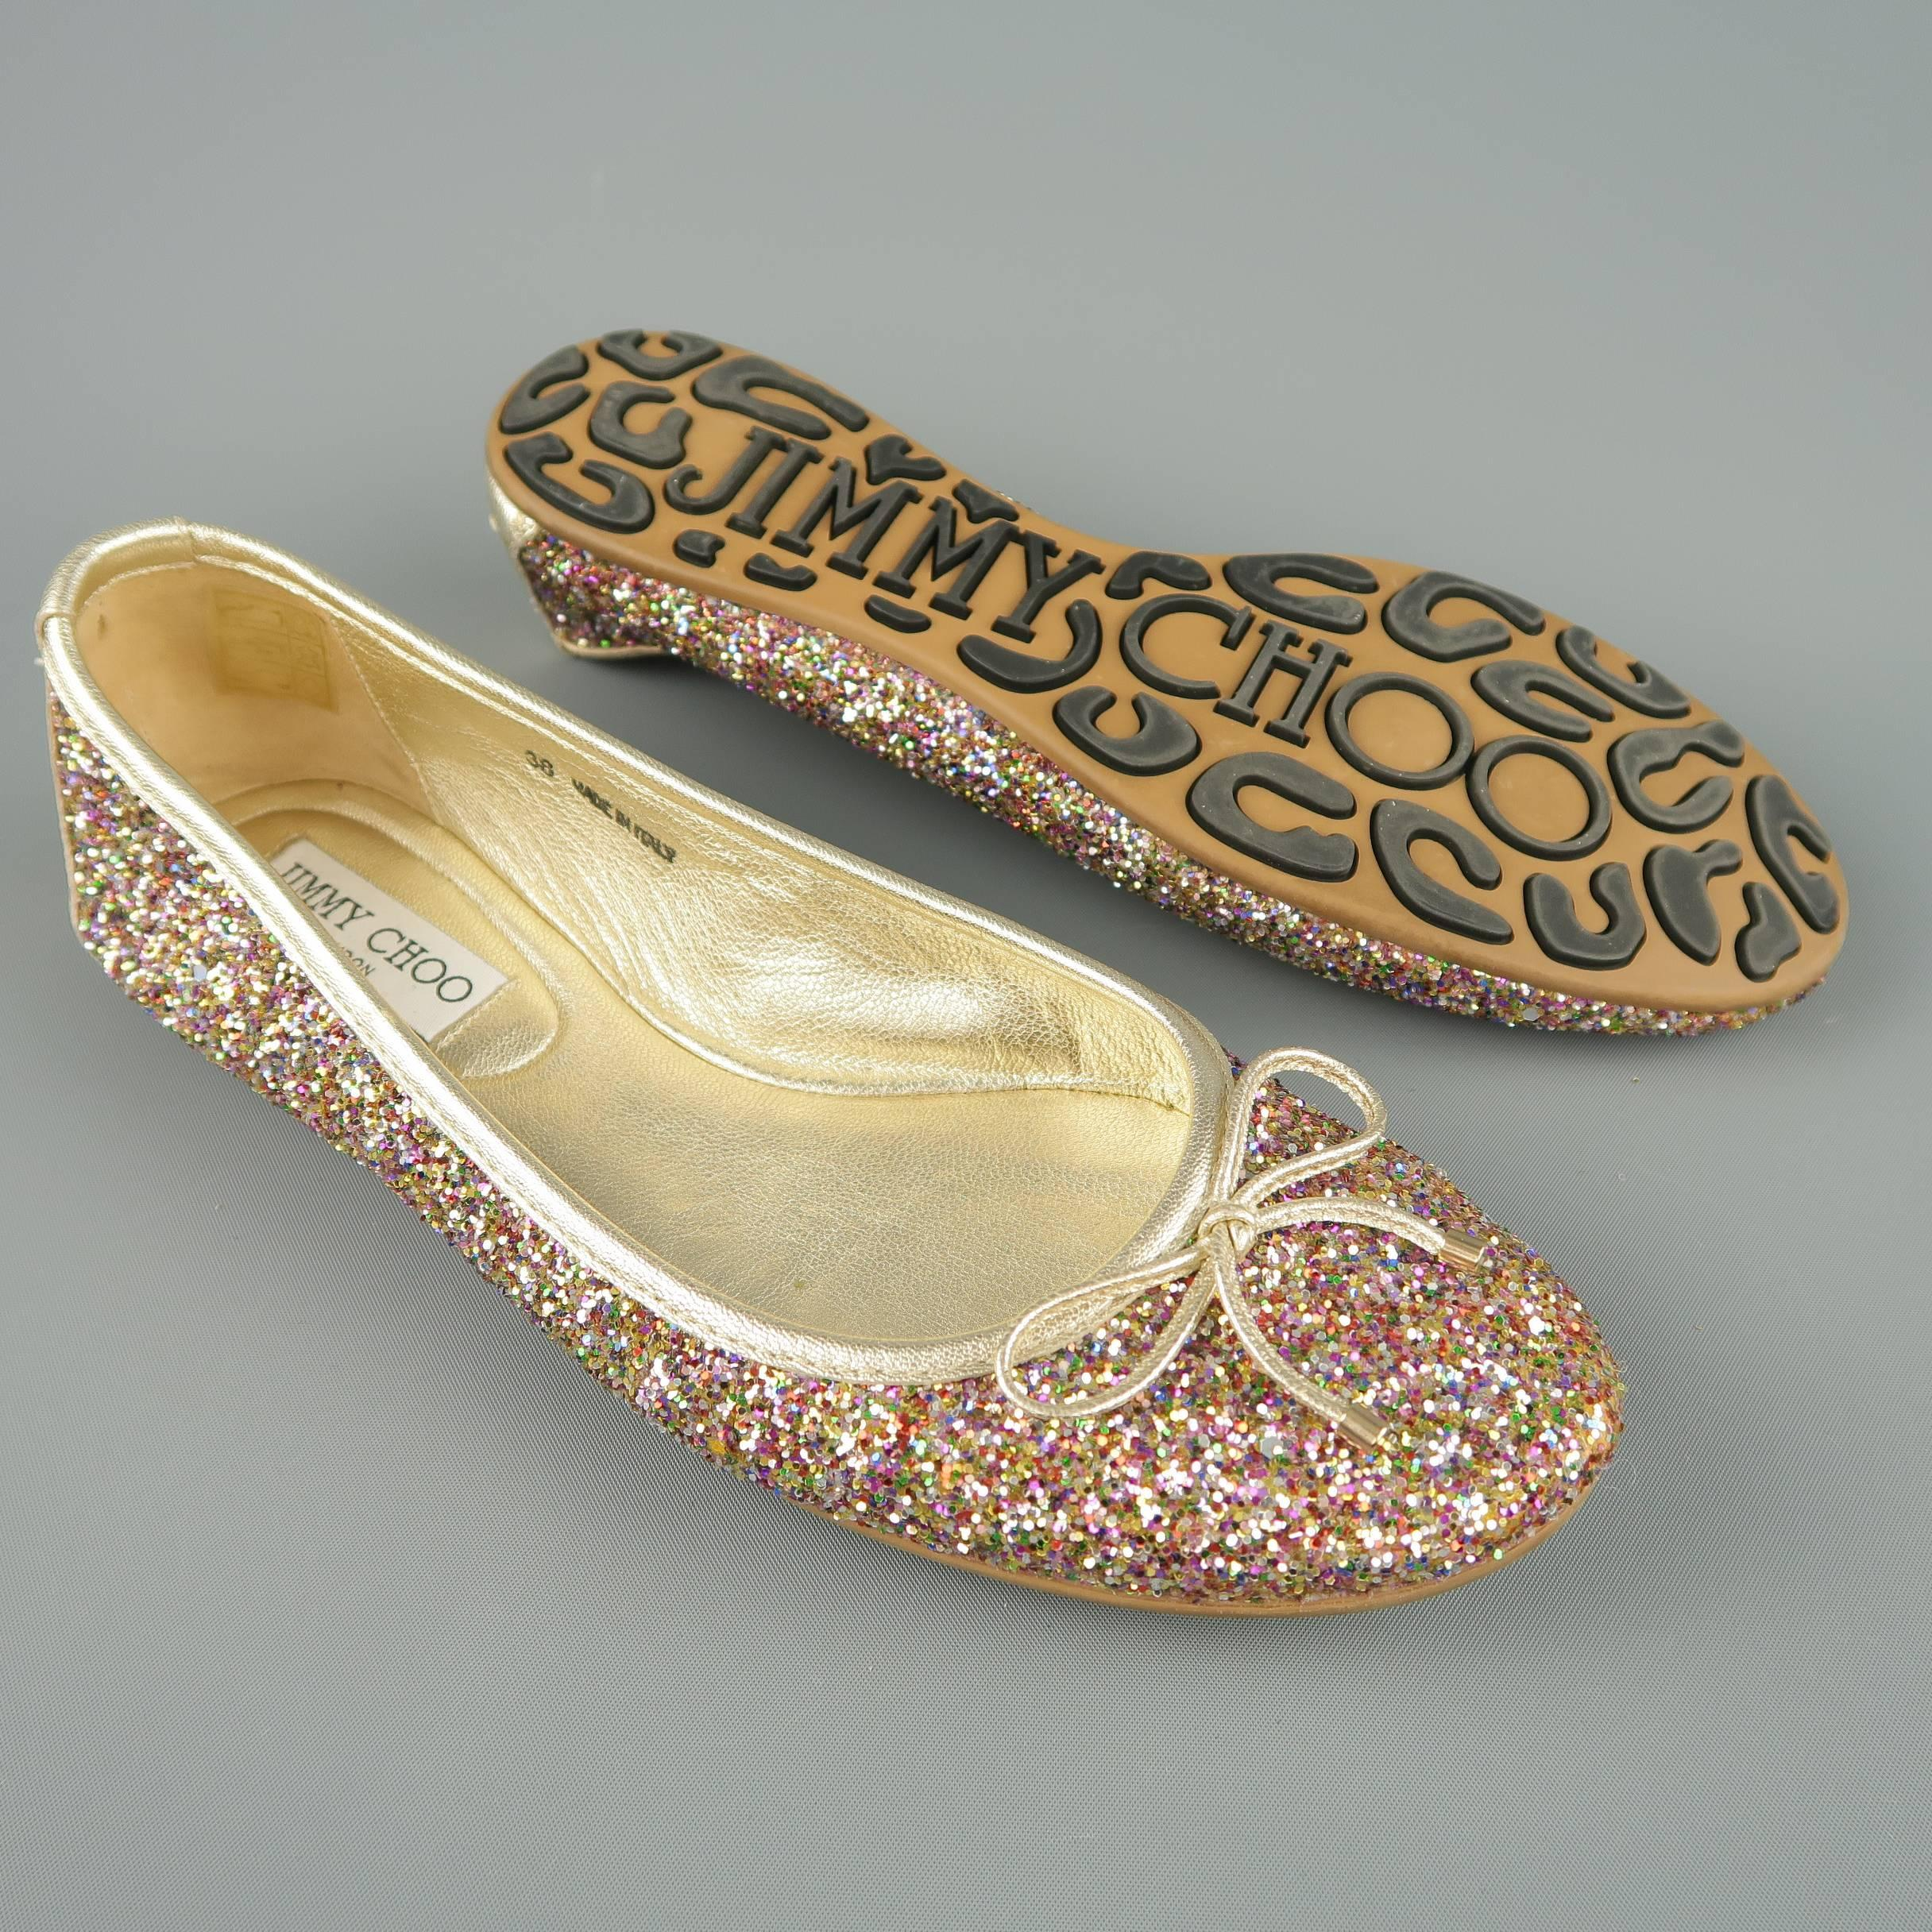 0c34b2494f0 ... new zealand brown jimmy choo size 8 gold leather multi color glitter ballet  flats for sale